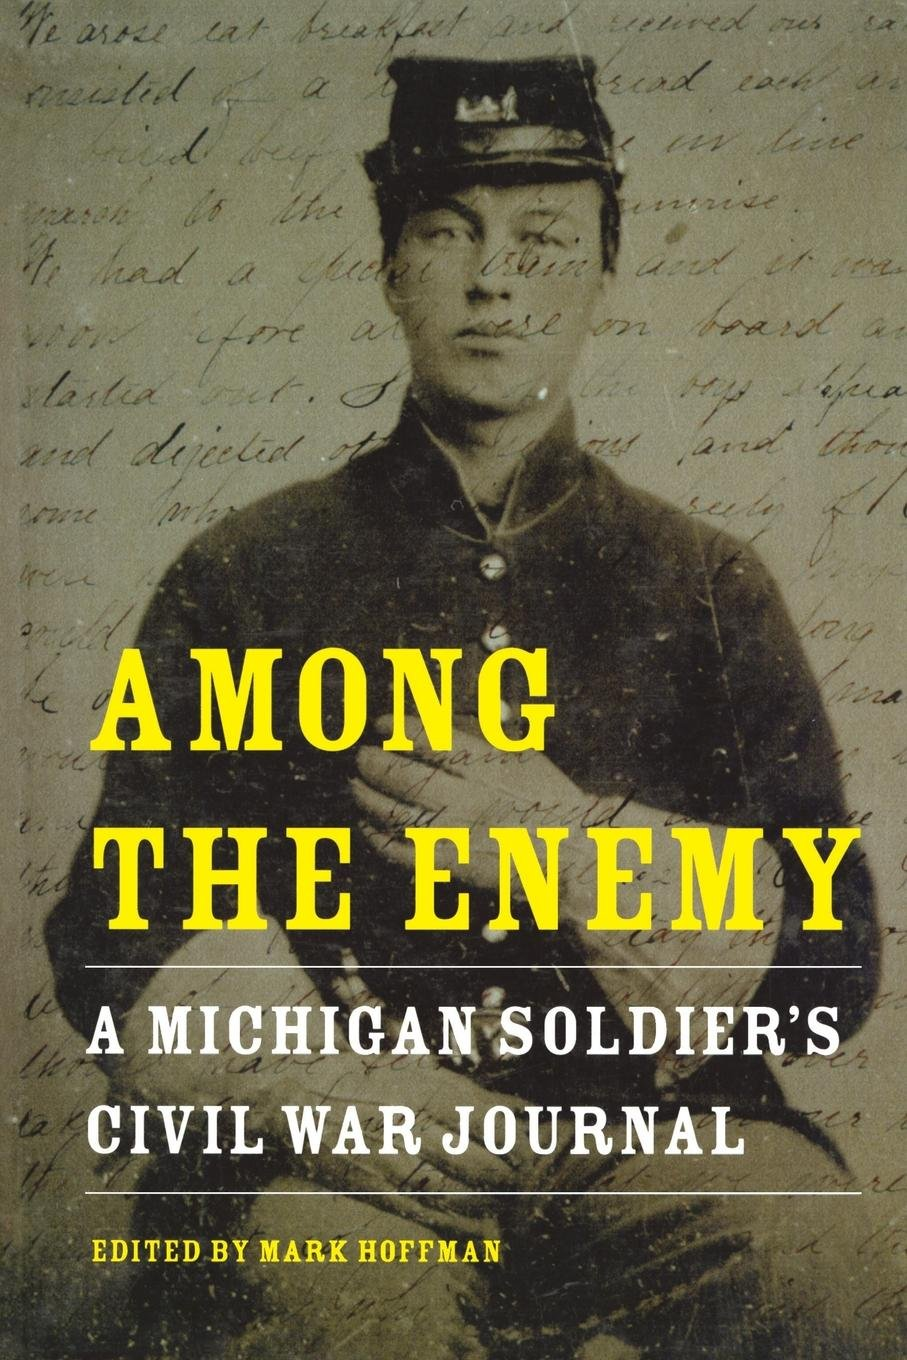 Among the Enemy: A Michigan Soldier's Civil War Journal (Great Lakes Books Series) pdf